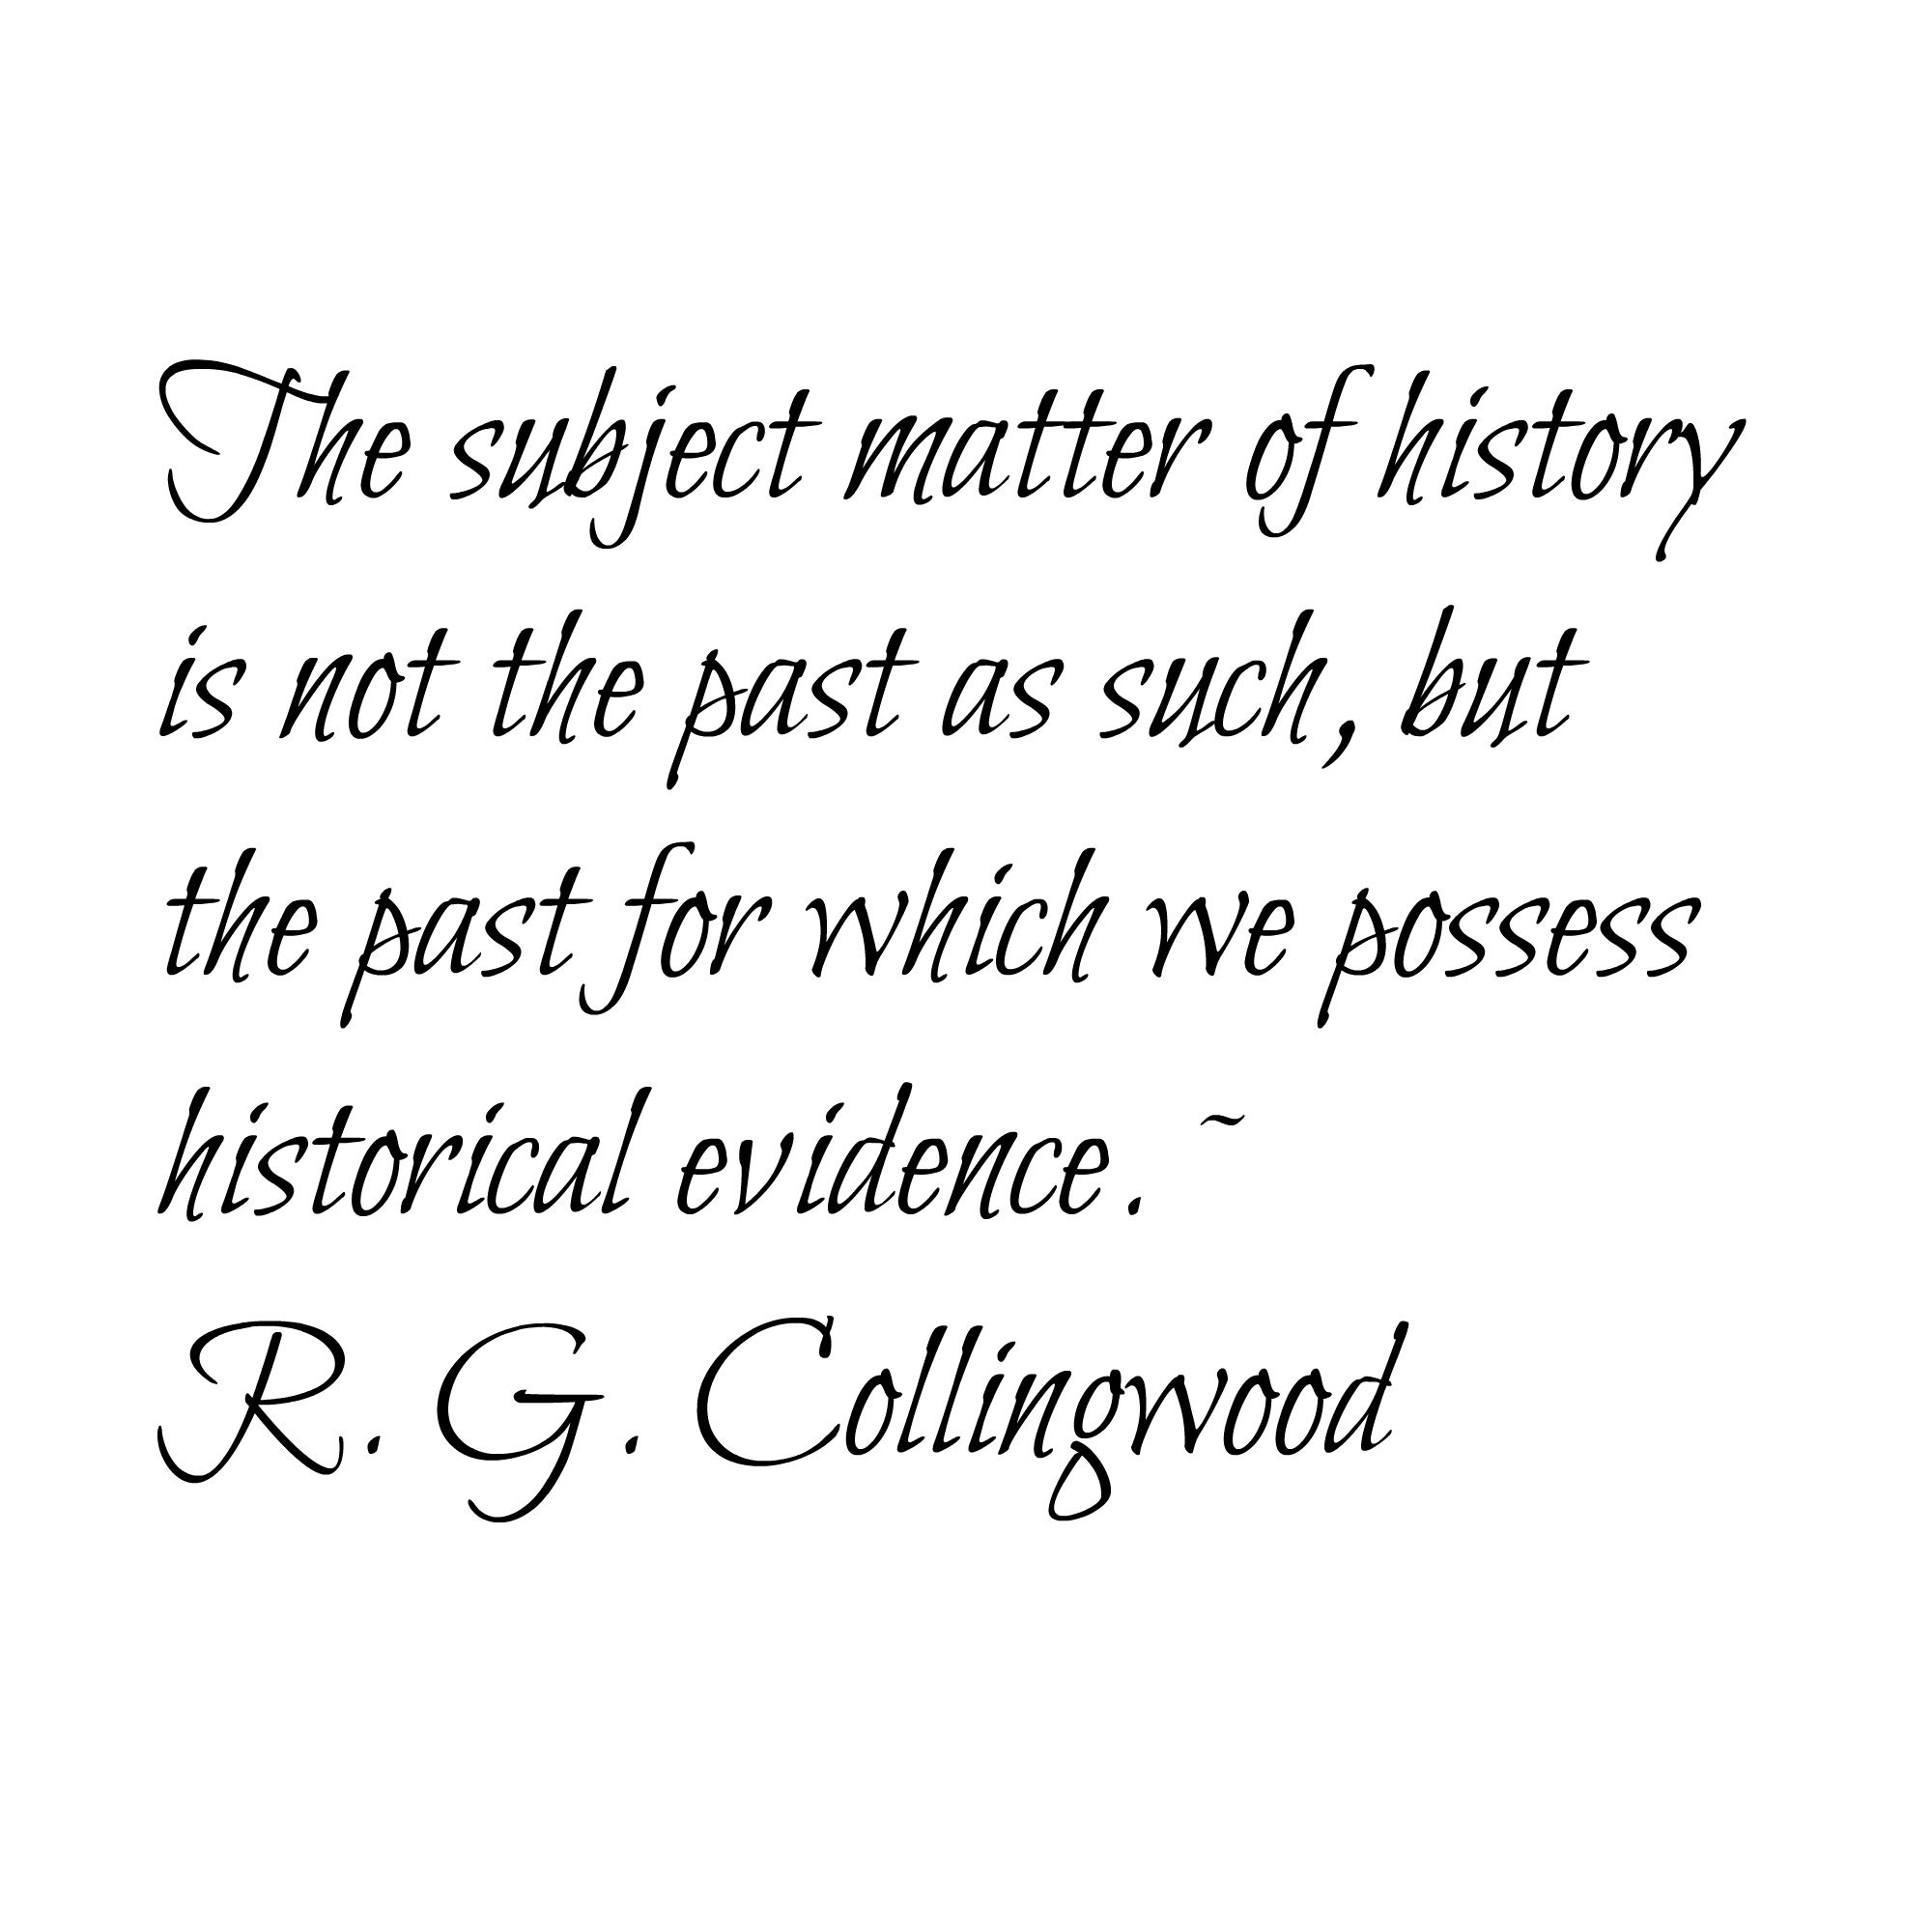 The Subject Matter Of History Is Not The Past As Such But The Past For Which We Possess Historical Evidenc Genealogy Quotes Historical Evidence Family History